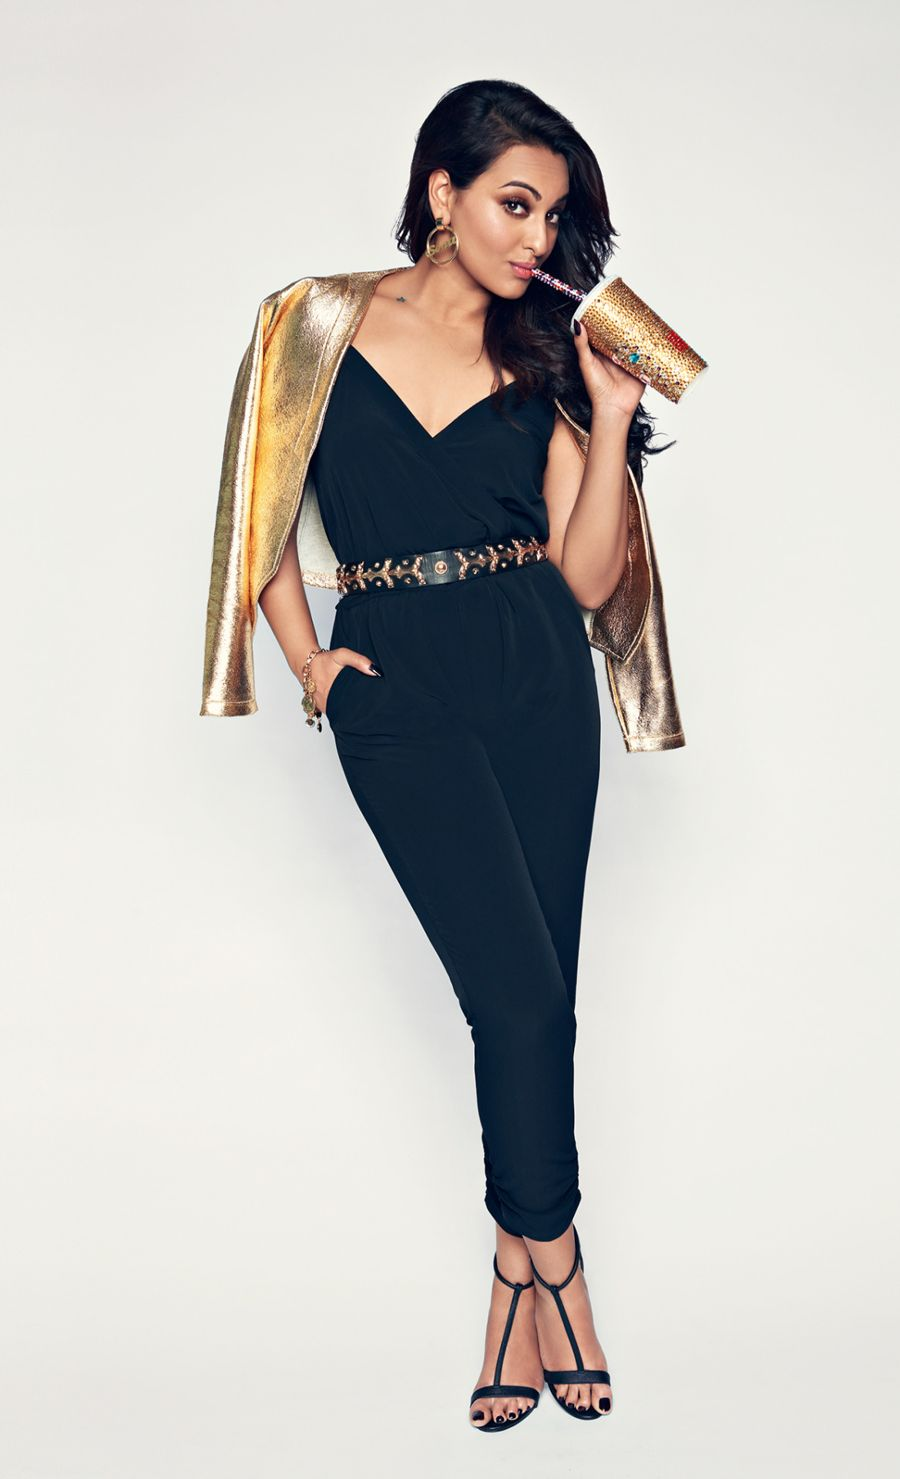 Sonakshi Sinha looking Classy during photoshoot